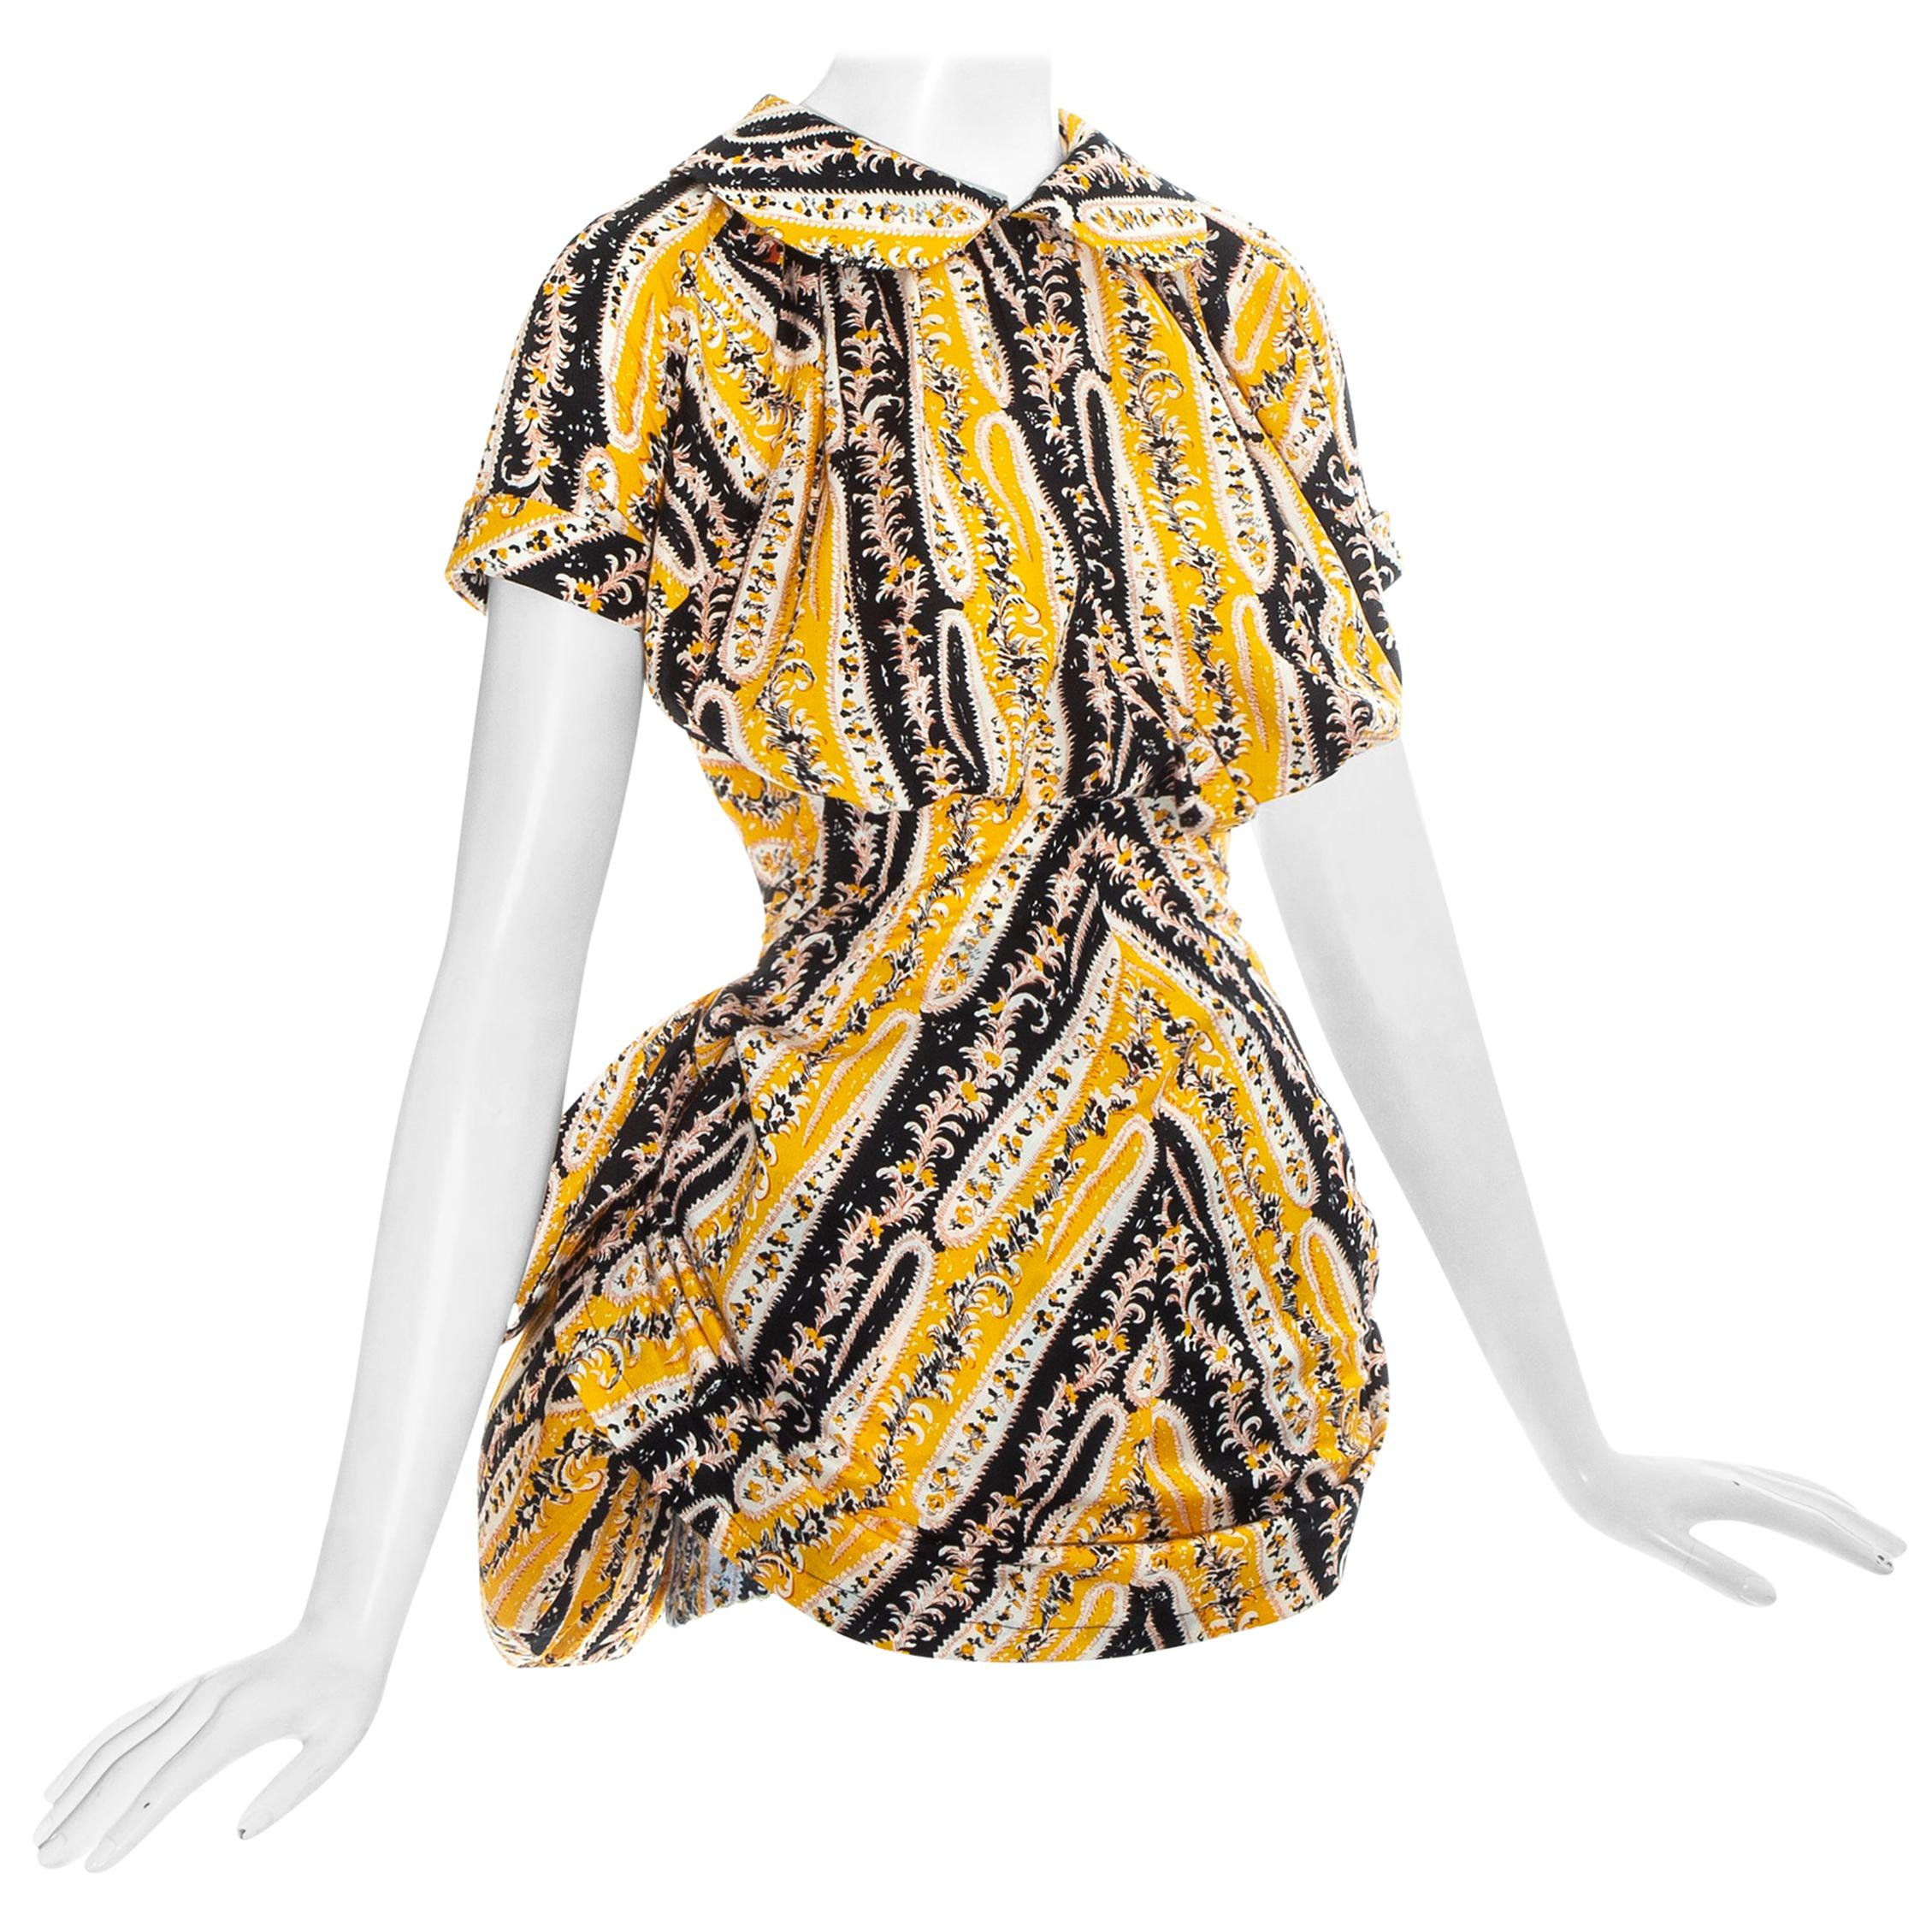 Vivienne Westwood yellow printed cotton mini dress with bustle, ss 1995